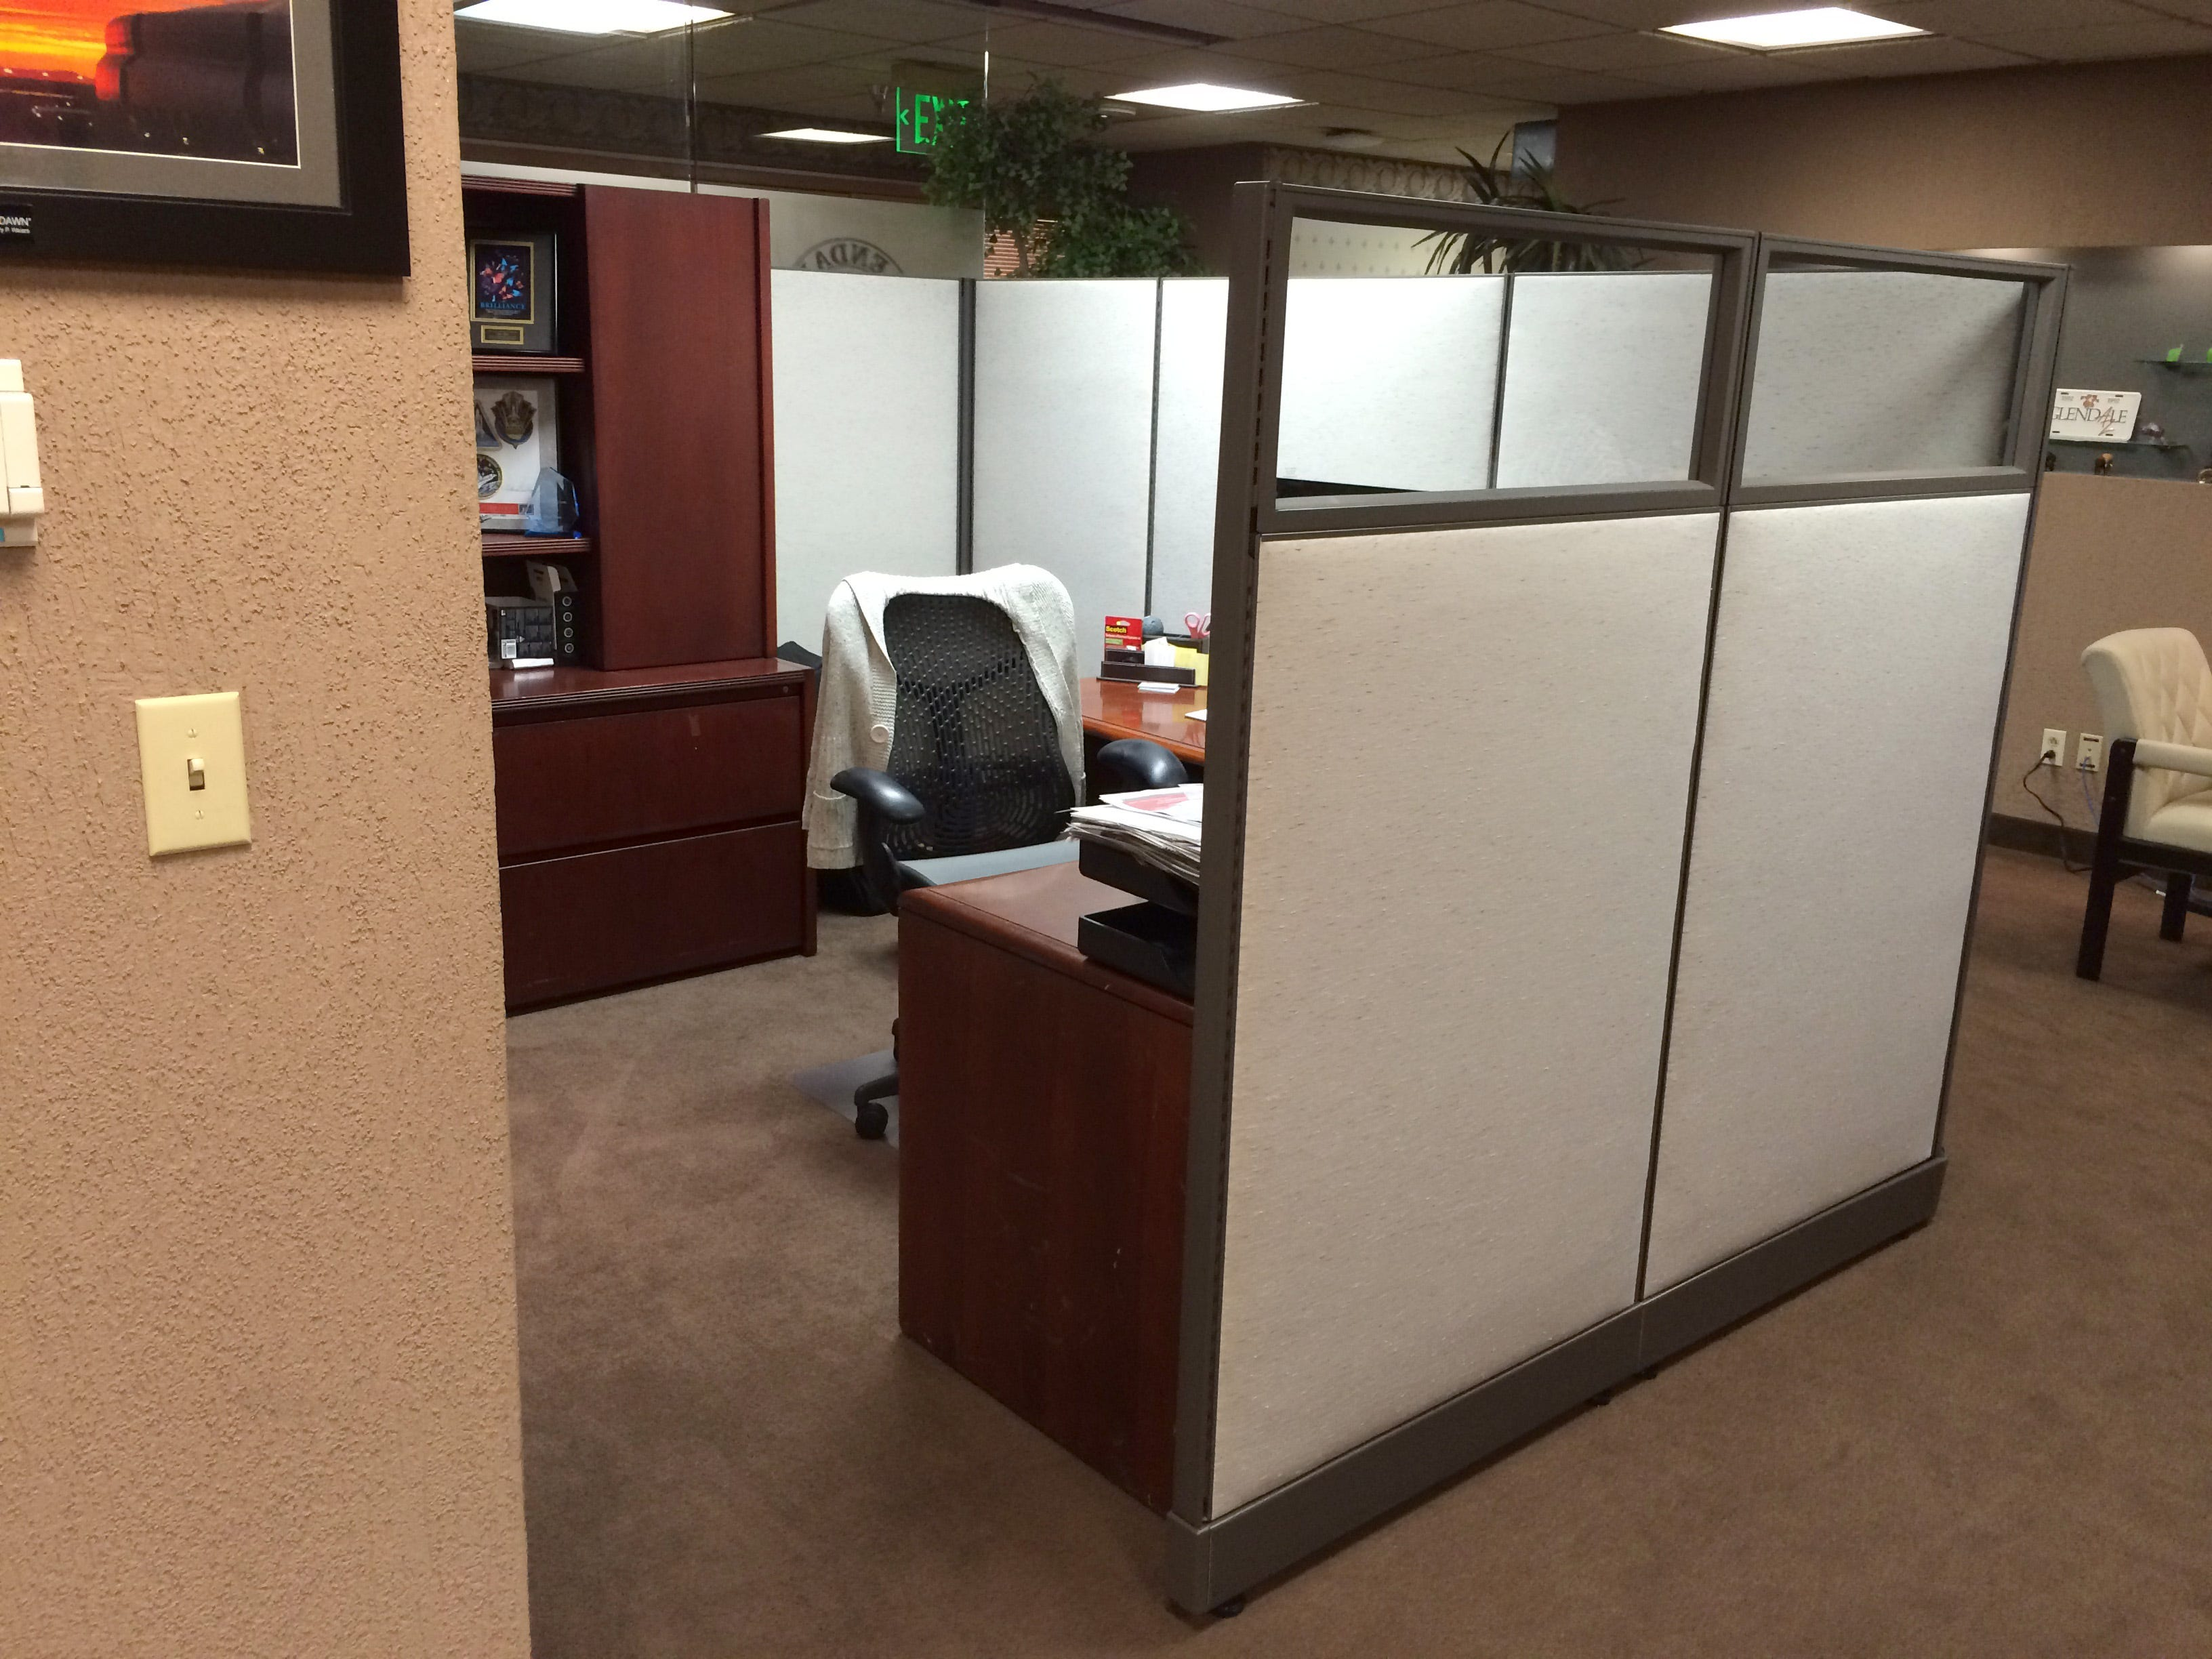 This Cubical Office Was Built In The Outer Lobby Of